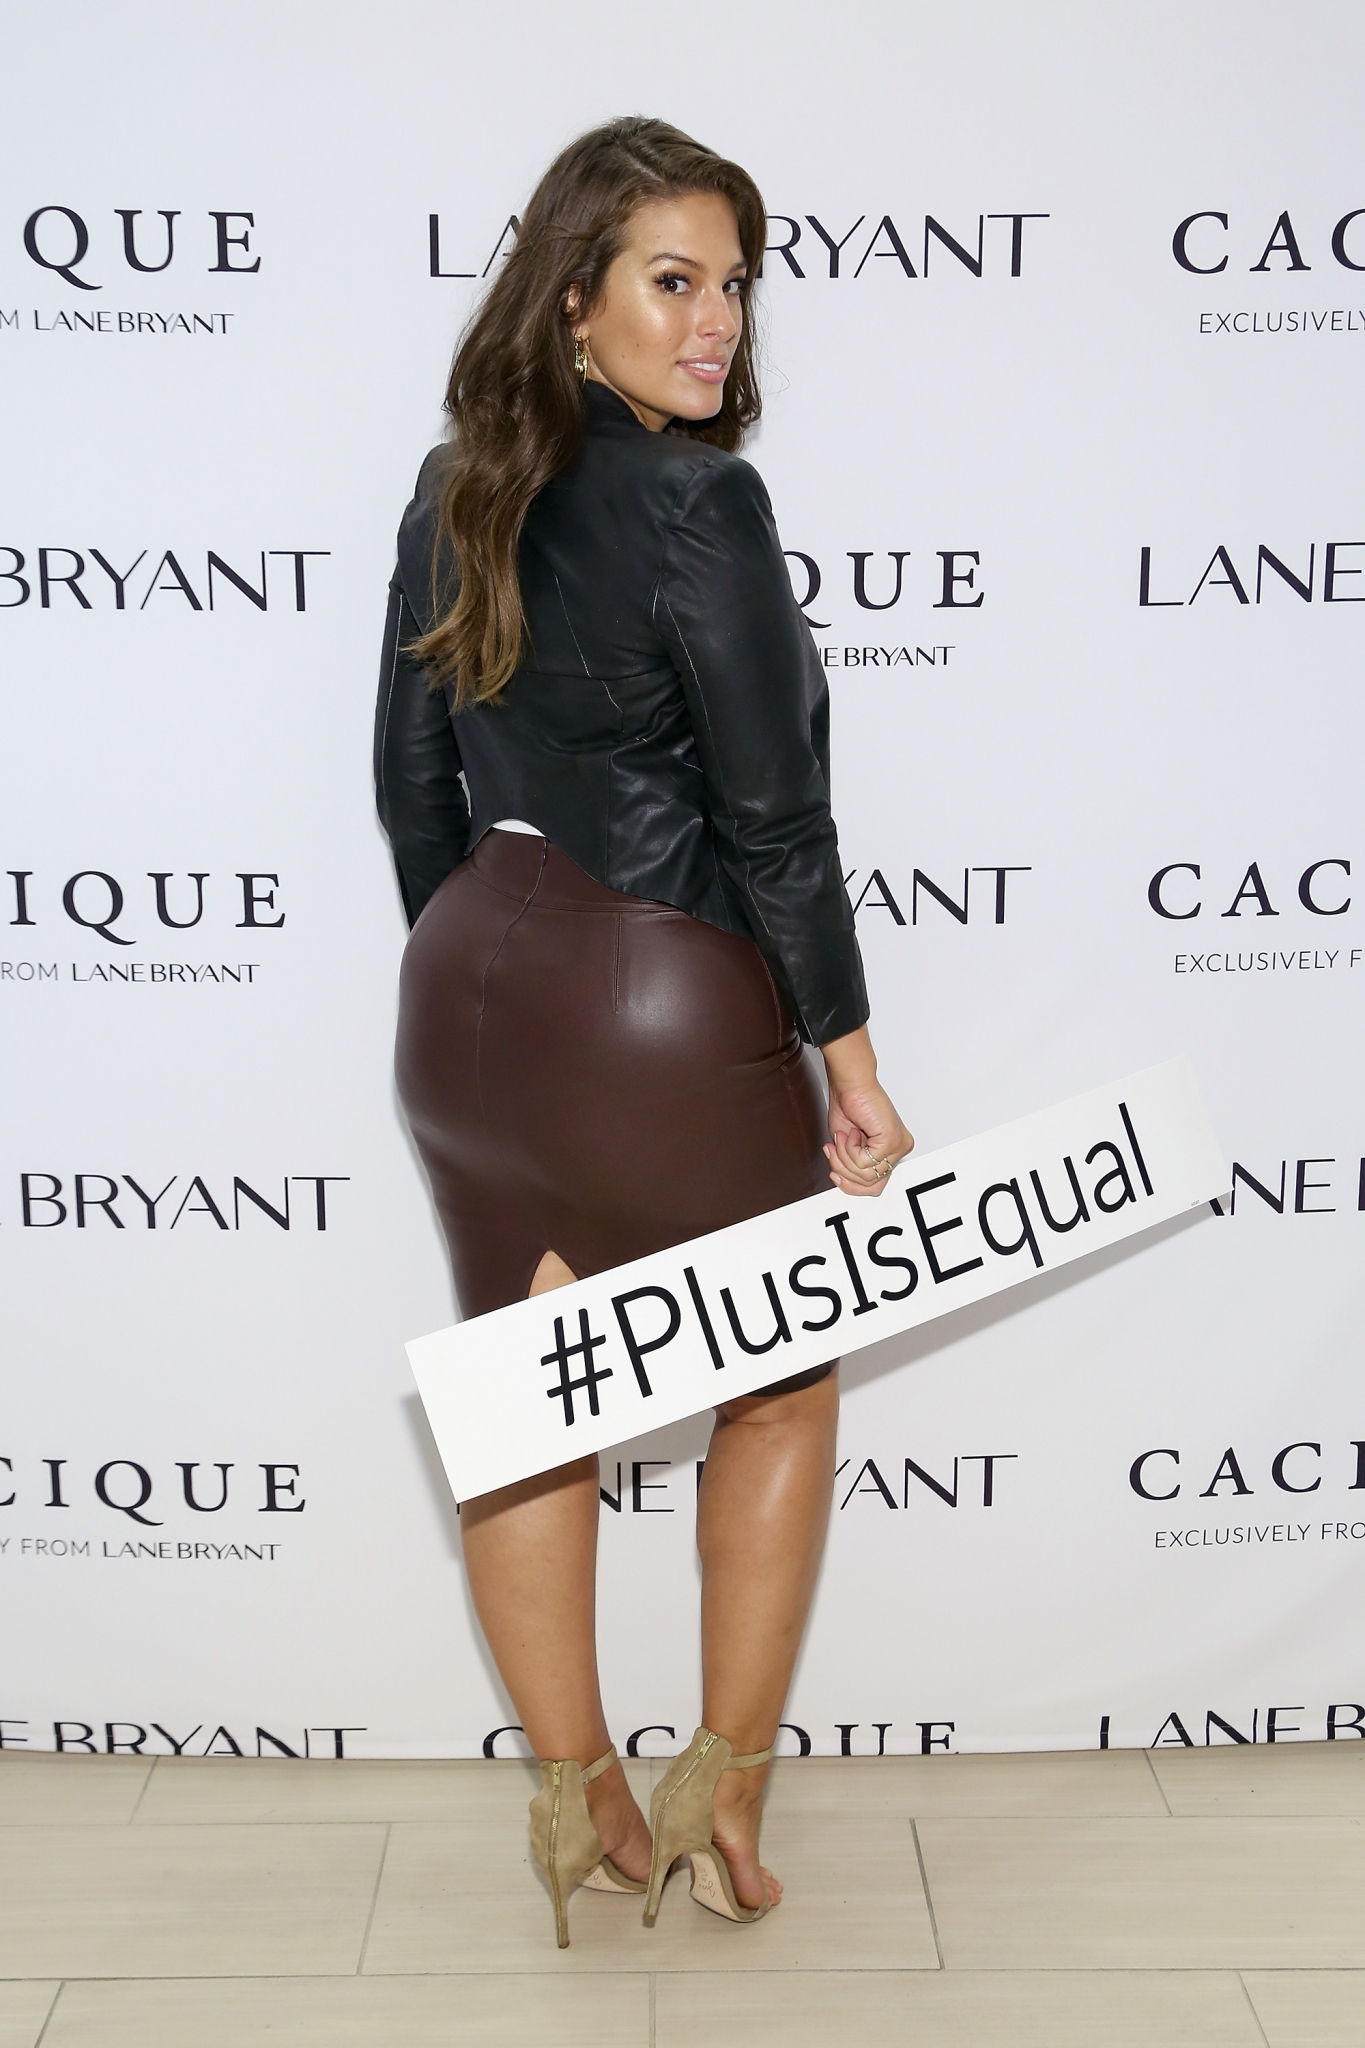 Lane Bryant Twitter Q Amp A Backfires Houston Chronicle